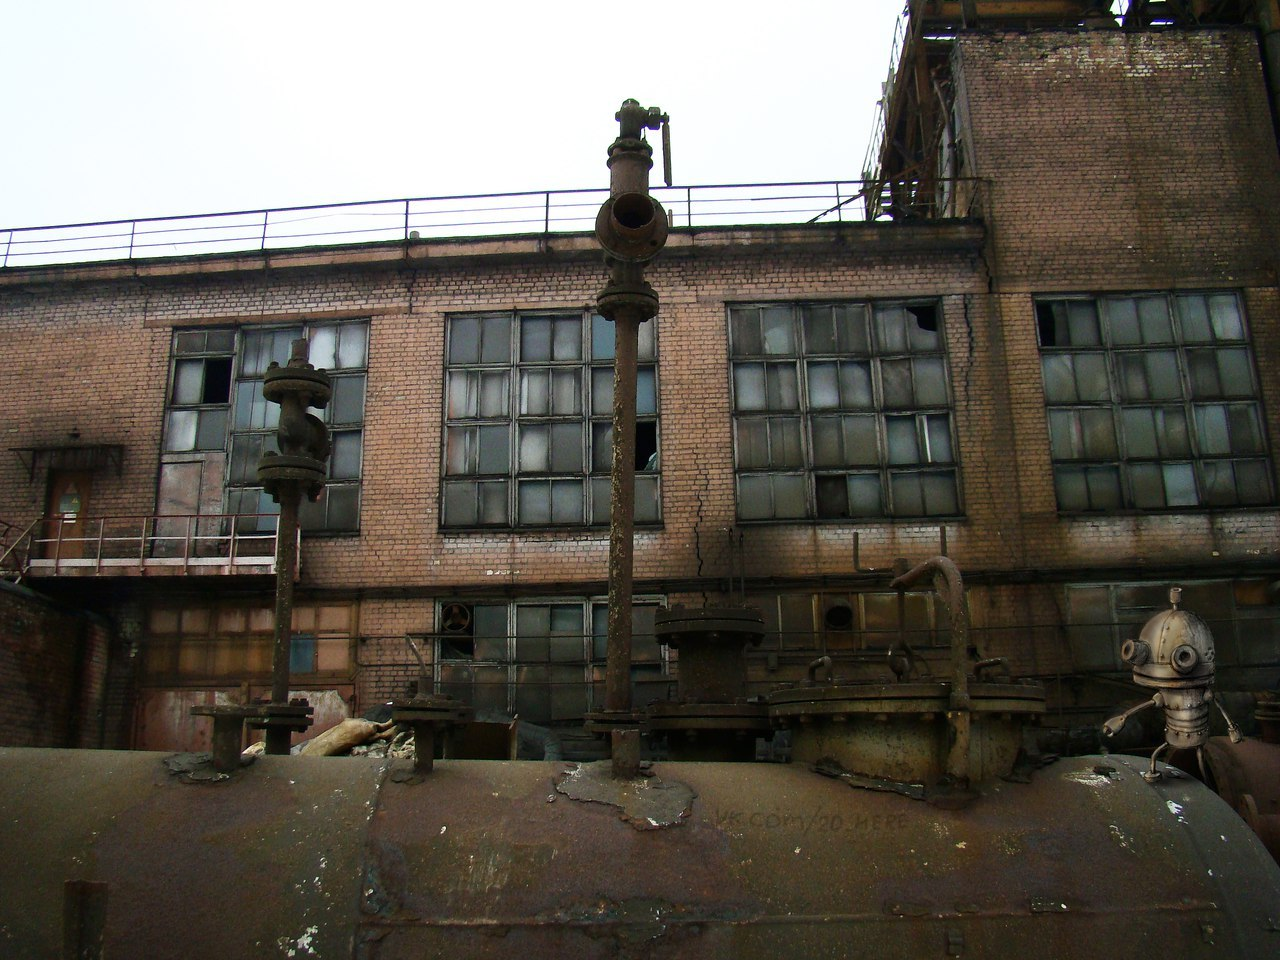 Hey, are you out of ideas for Machinarium 2? Pick any abandoned plant in Russia for inspiration!